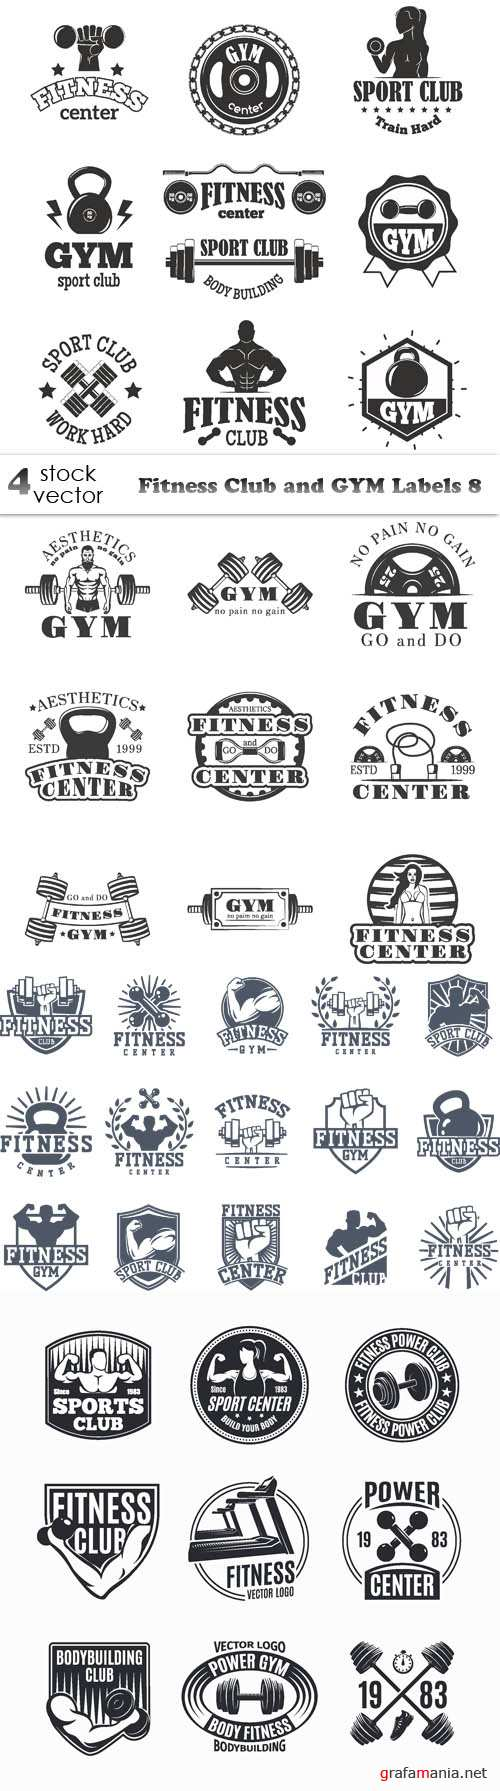 Vectors - Fitness Club and GYM Labels 8